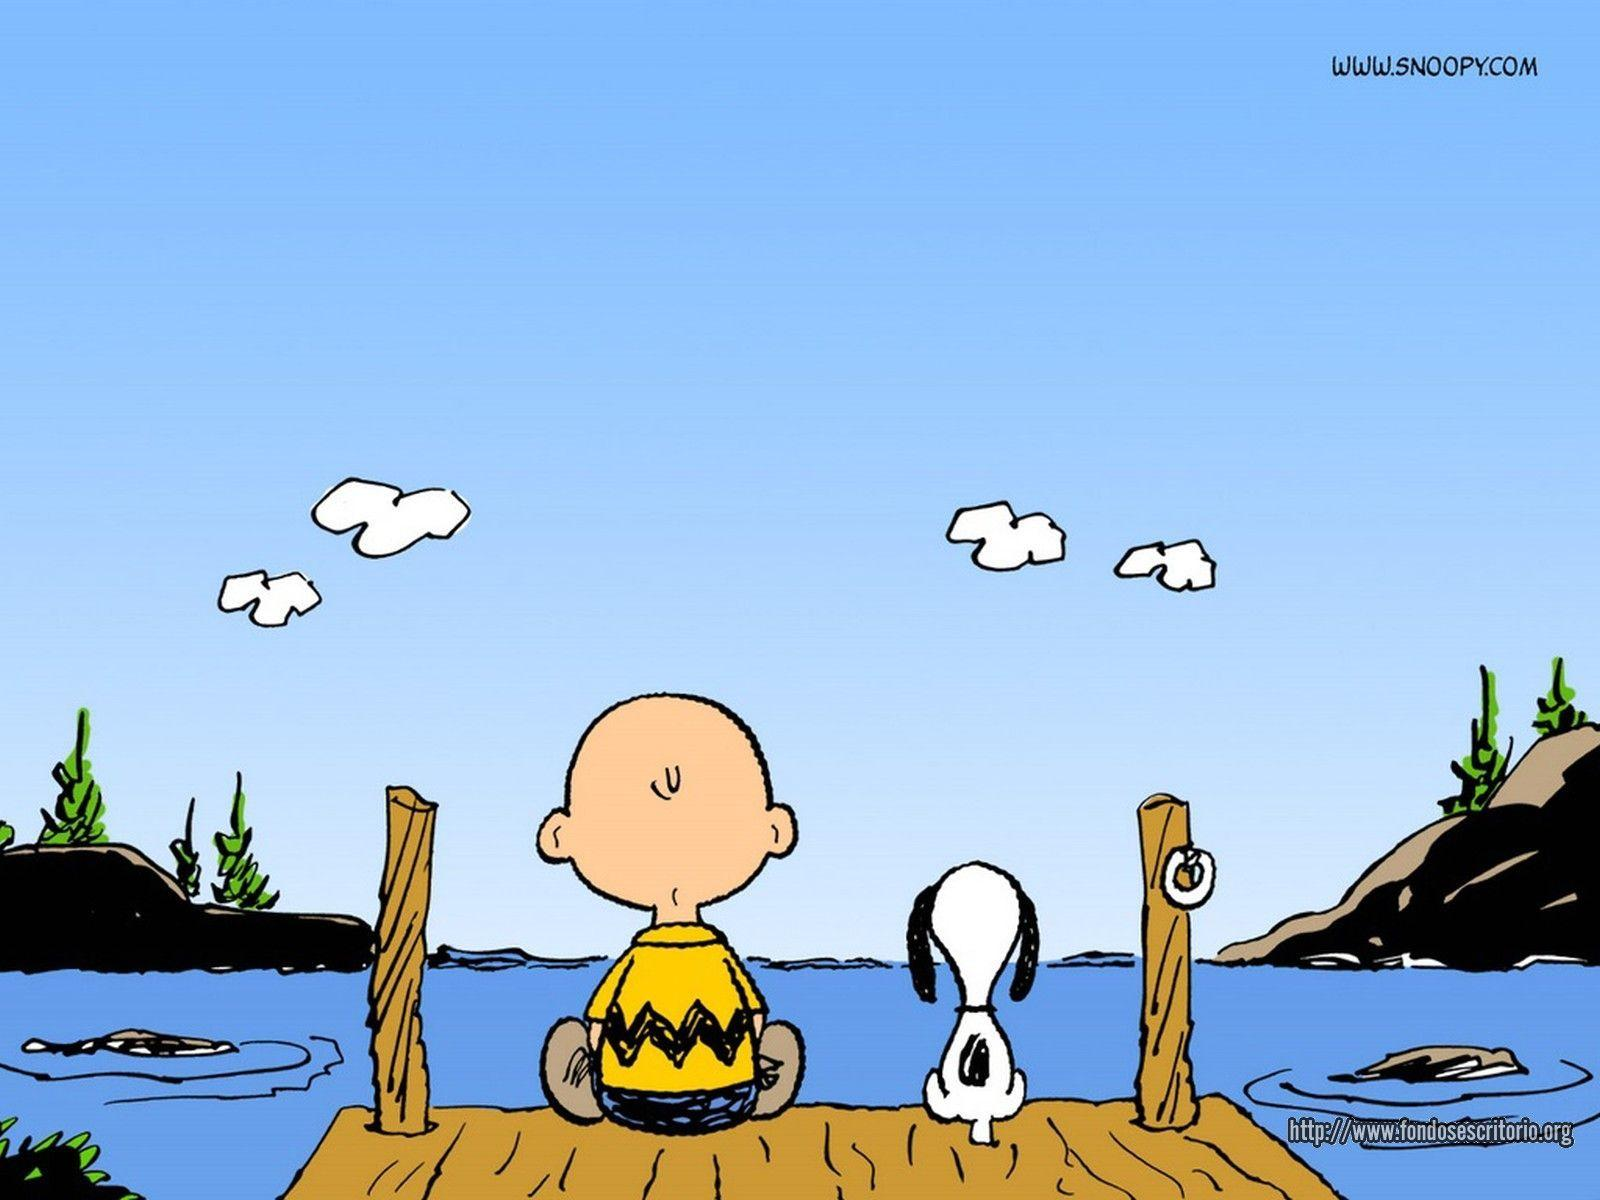 Snoopy desktop wallpapers wallpaper cave - Snoopy wallpaper for walls ...